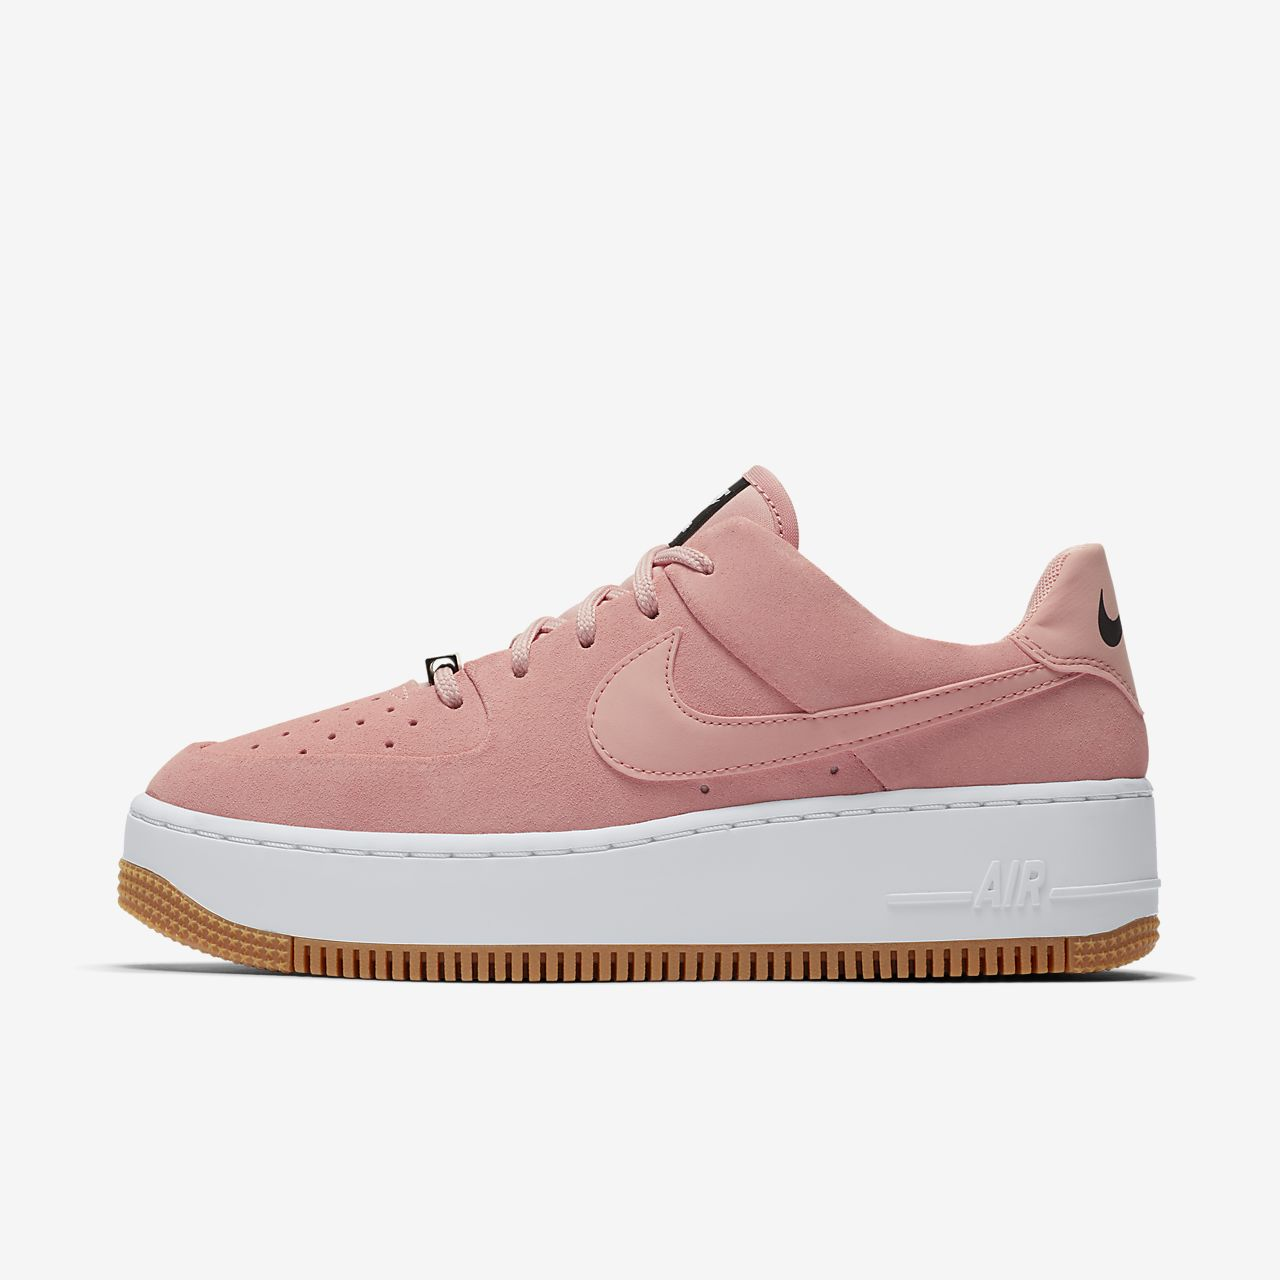 nike air force 1 low mujer rosas